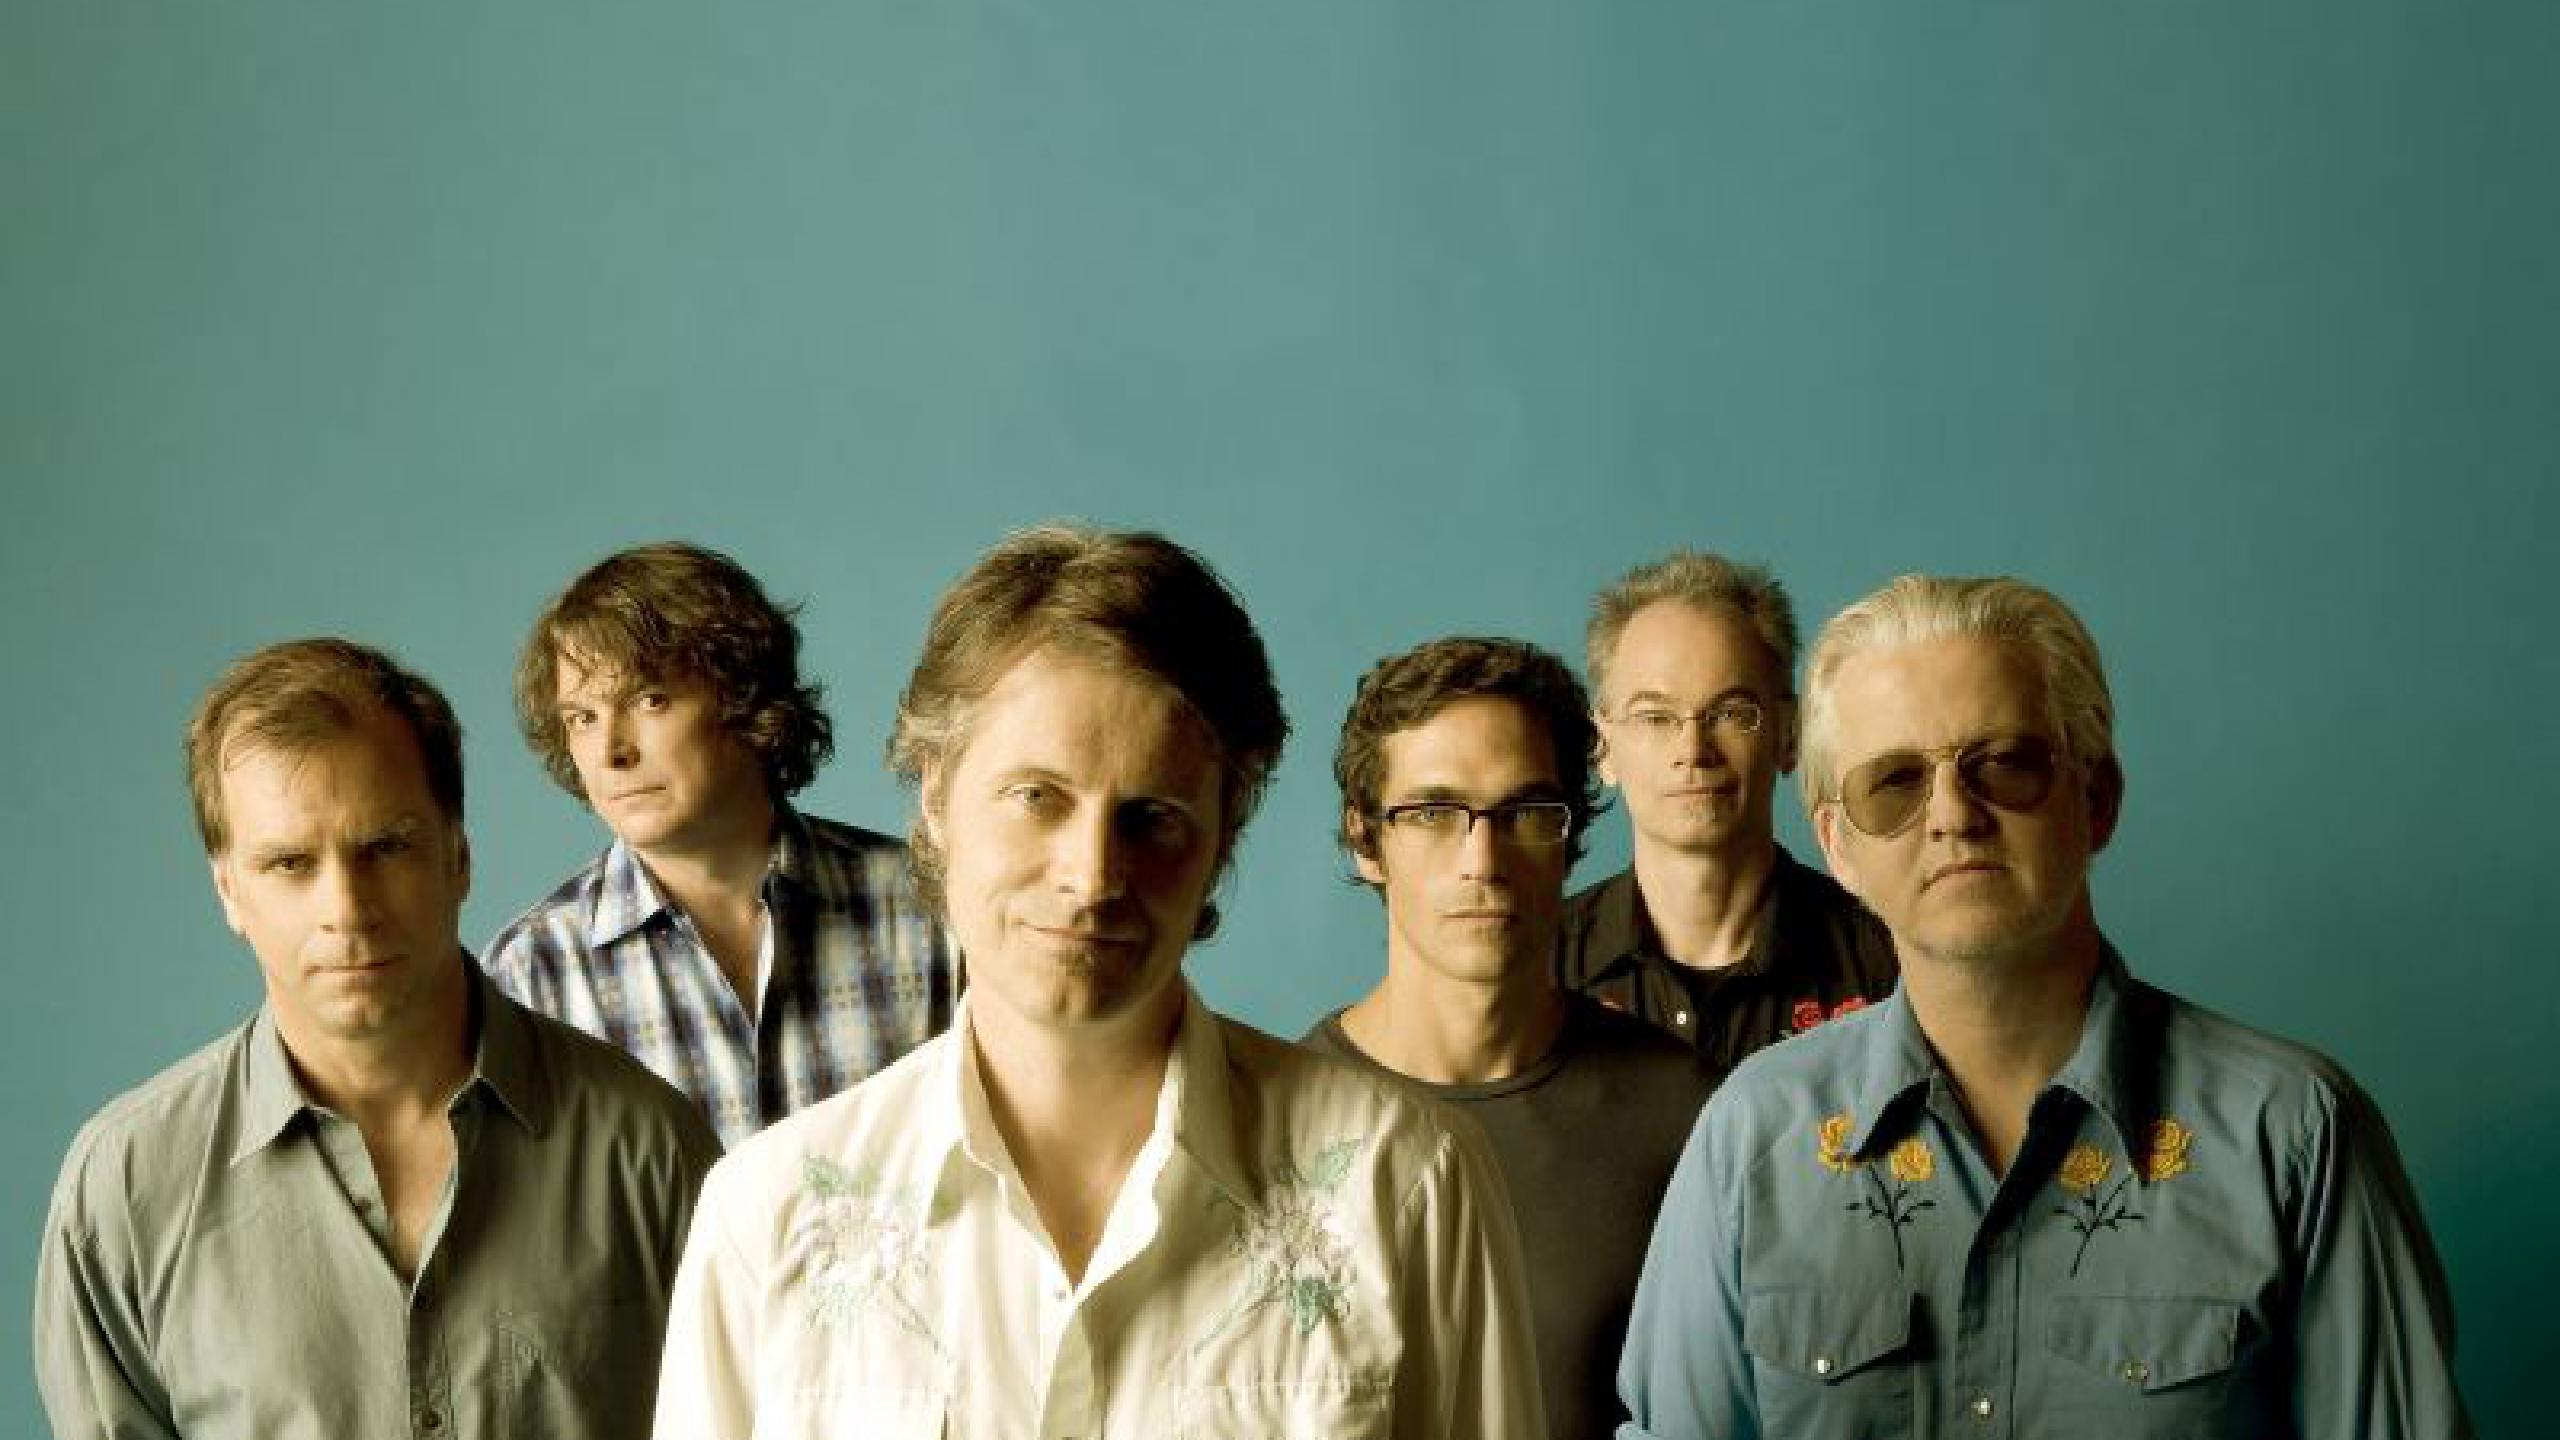 Blue Rodeo Tour Dates 2019 2020 Blue Rodeo Tickets And